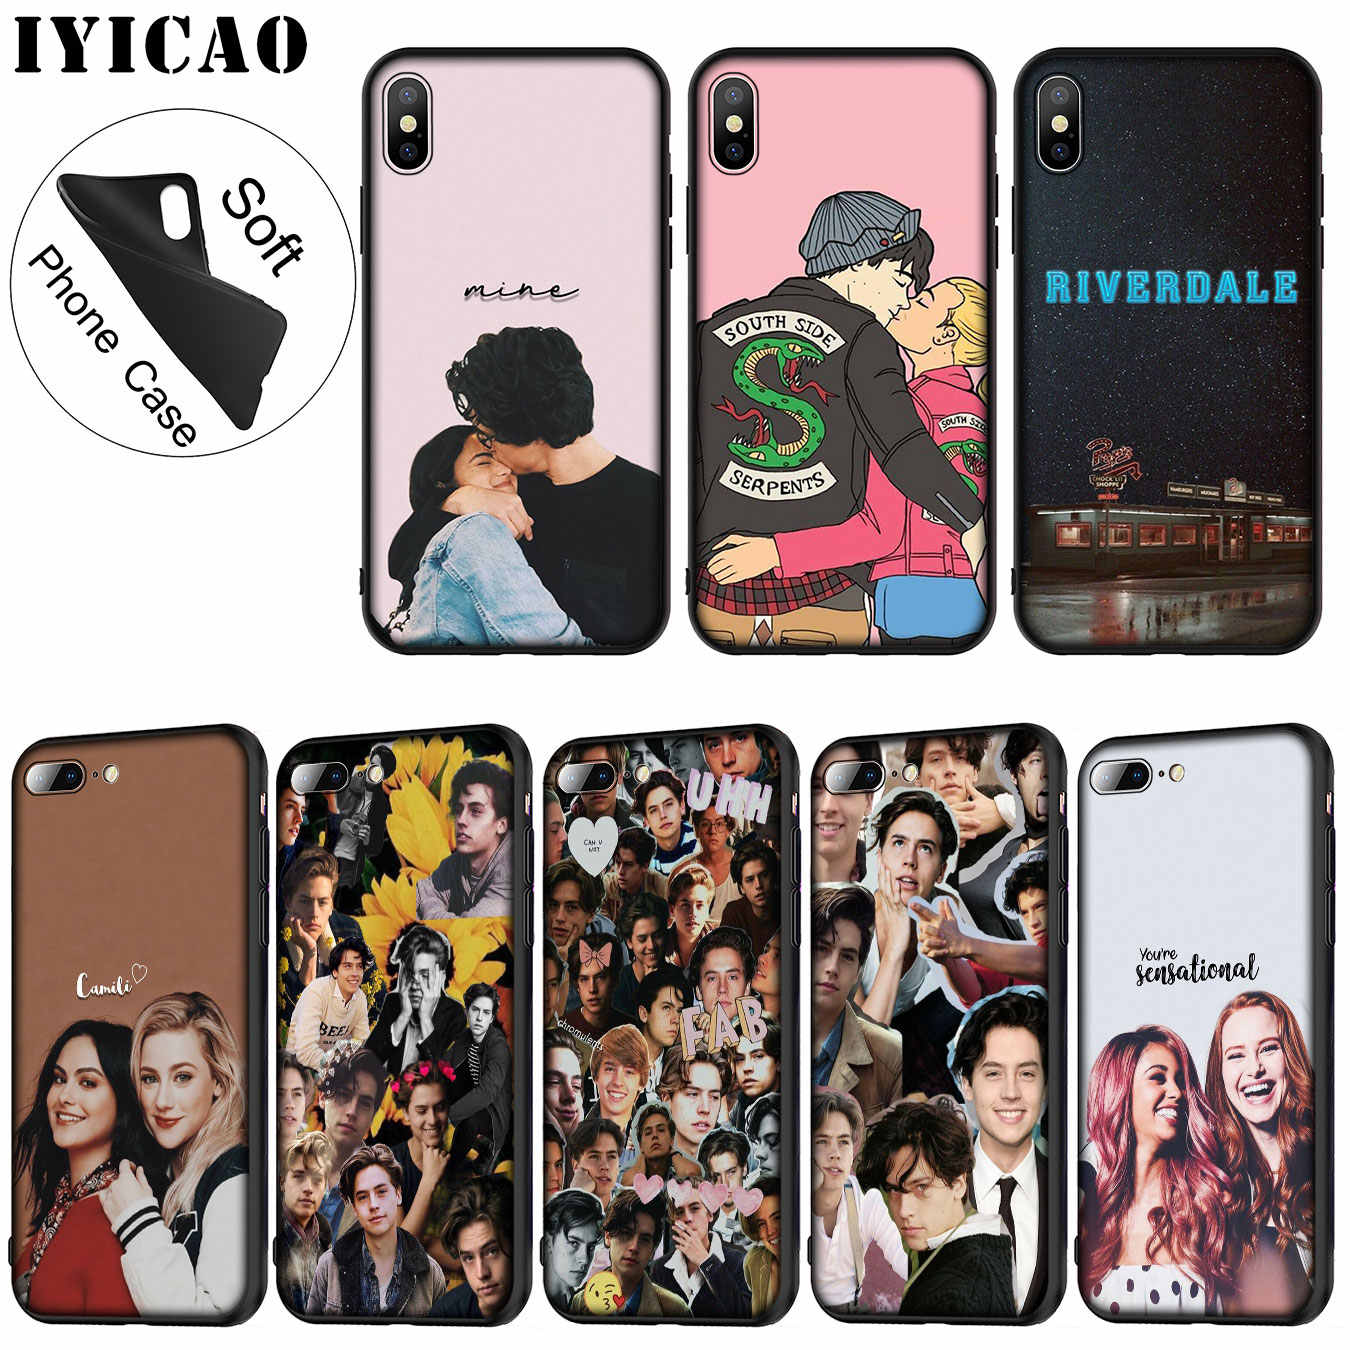 IYICAO riverdale choni Soft Silicone Phone Case for iPhone XR X XS 11 Pro Max 6 6S 7 8 Plus 5 5S SE 10 TPU Black Cover